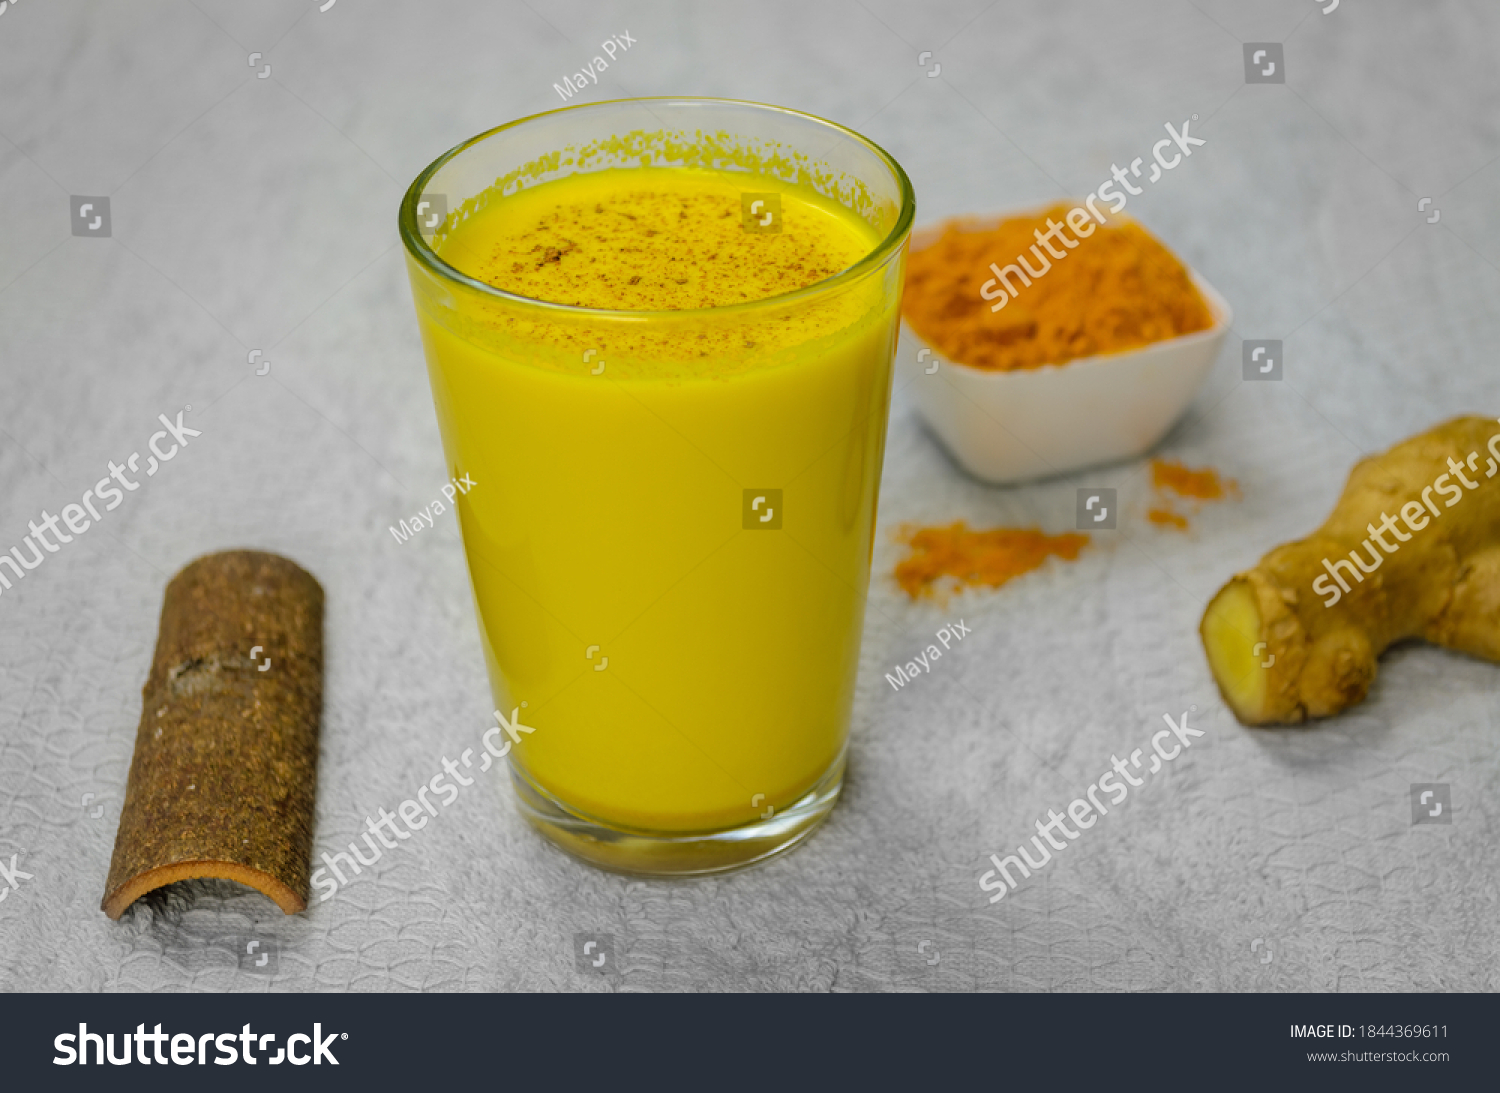 Closeup of Immunity Boosting Turmeric Milk along with cinnamon, turmeric powder and ginger